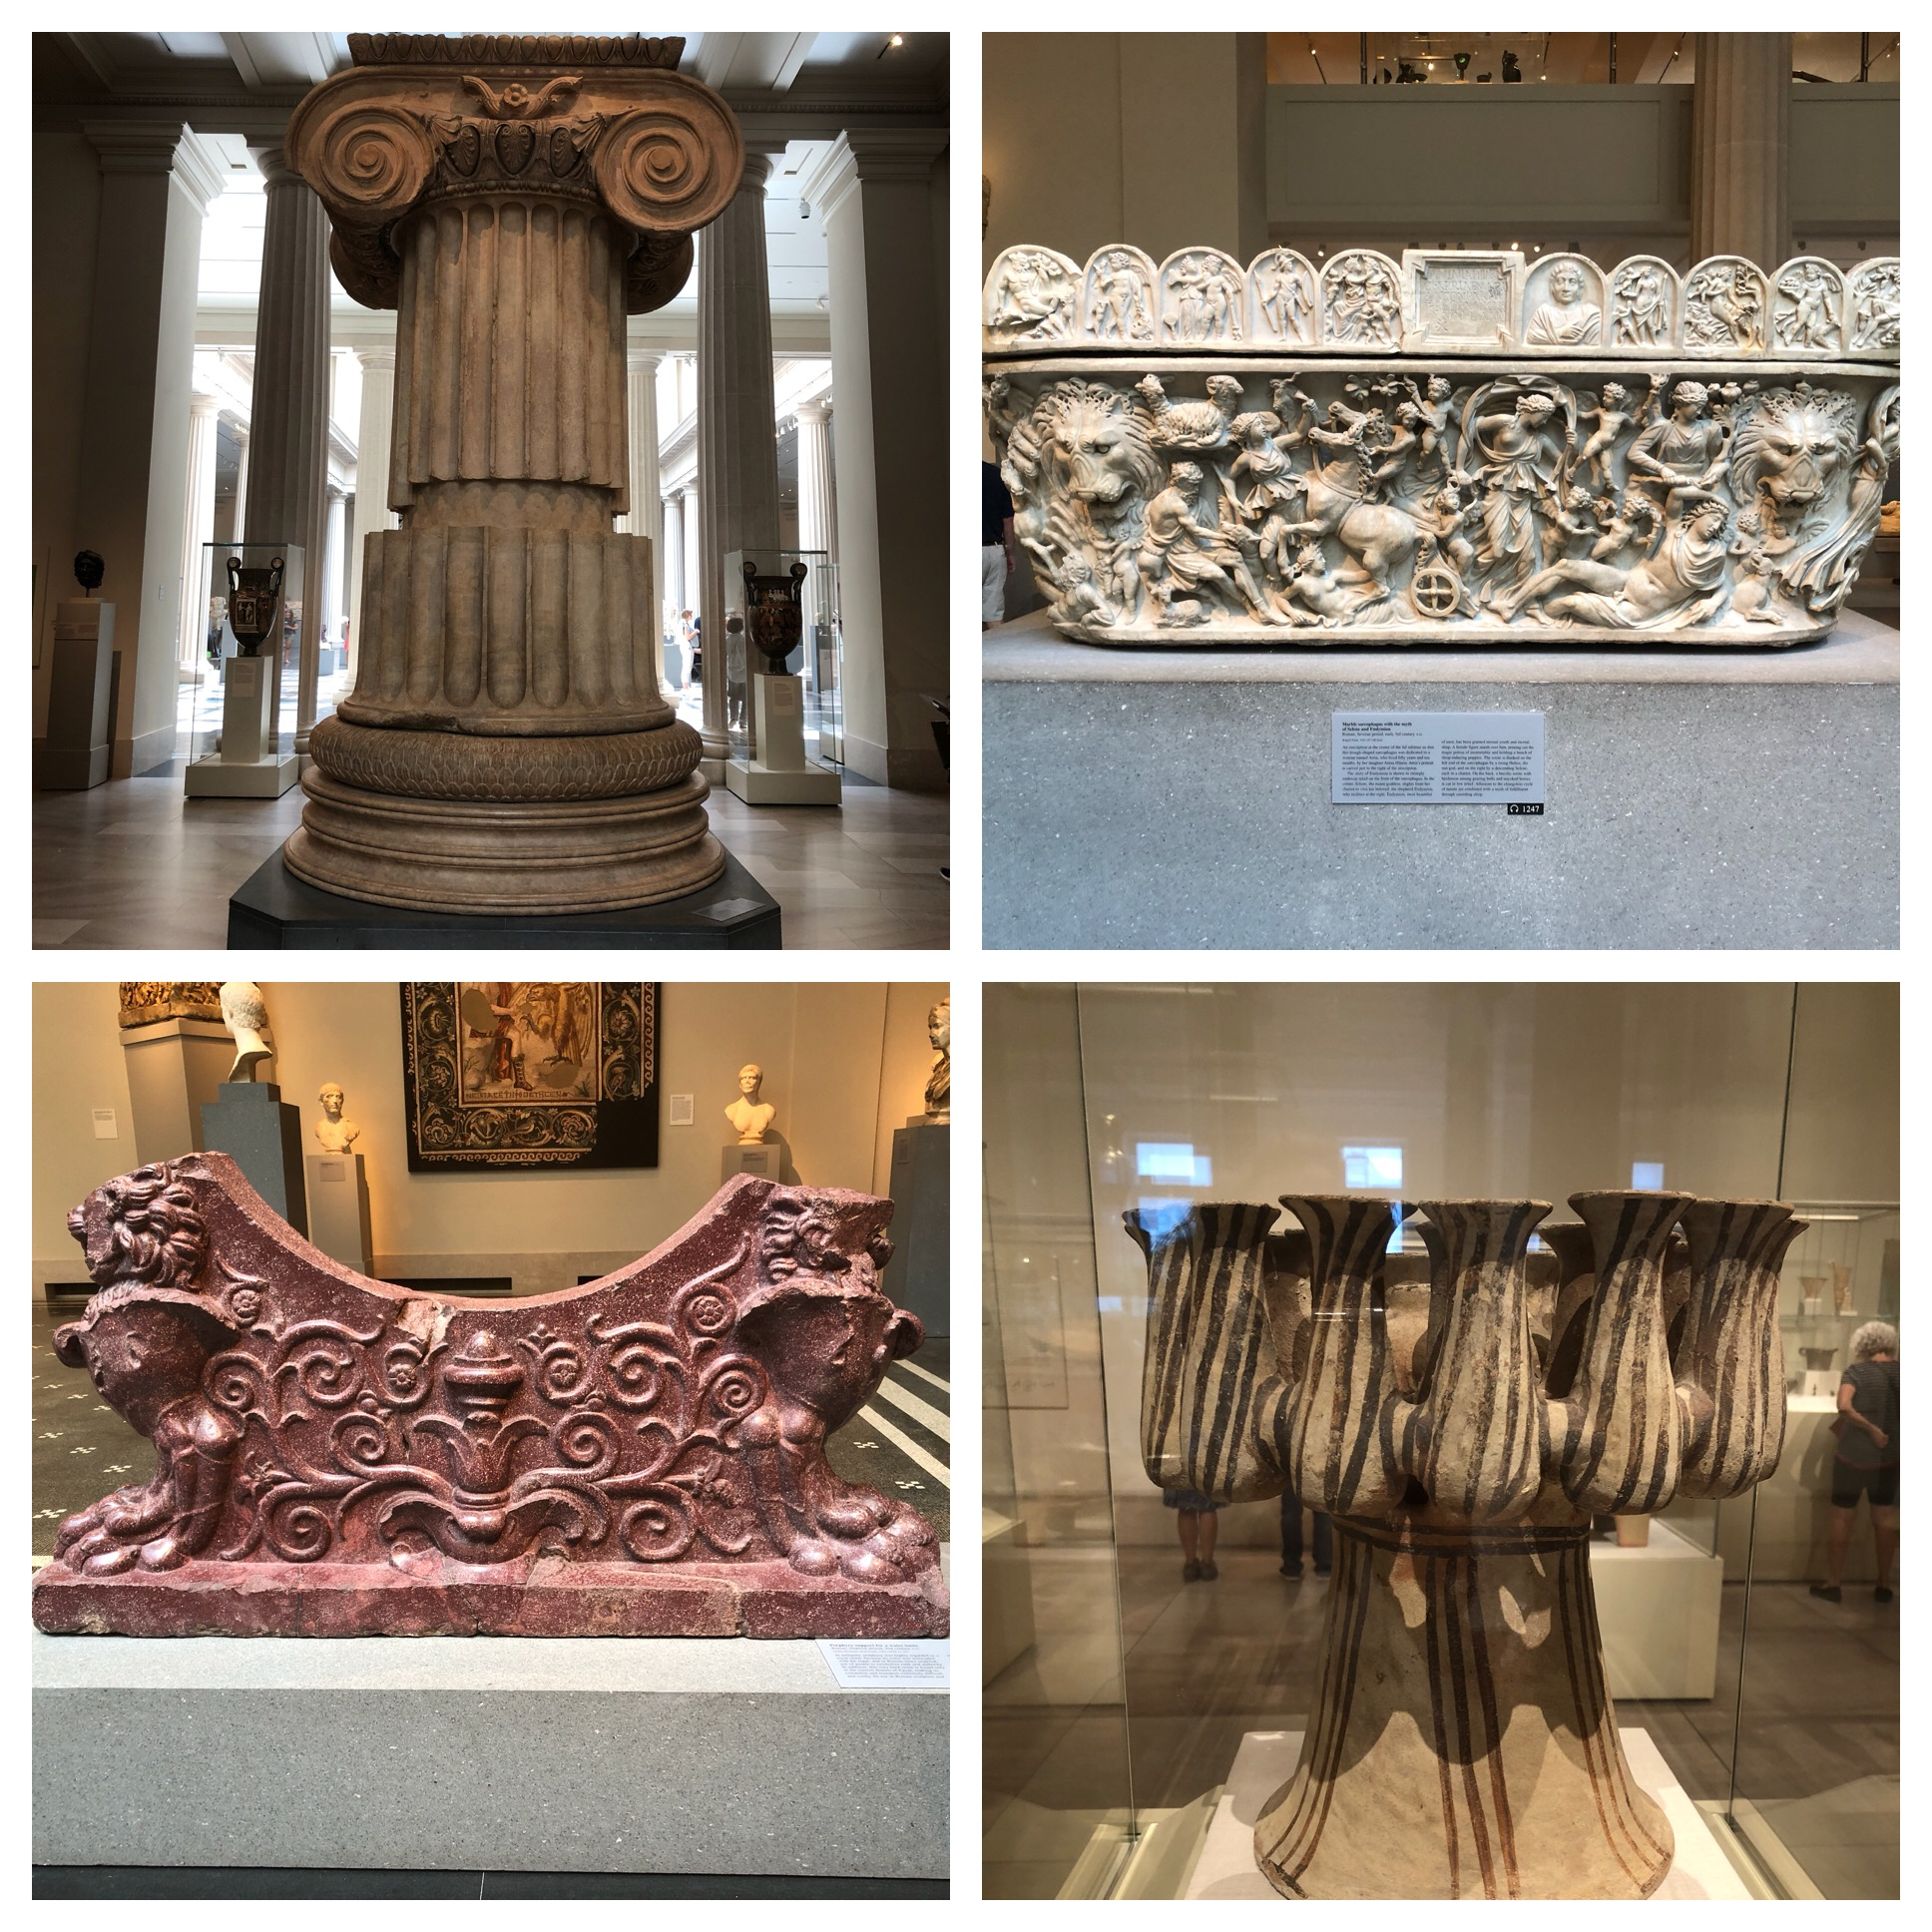 Bottom left is made from very hard stone called Porphyry which is very rare and considered royal. This was a support for a water basin.